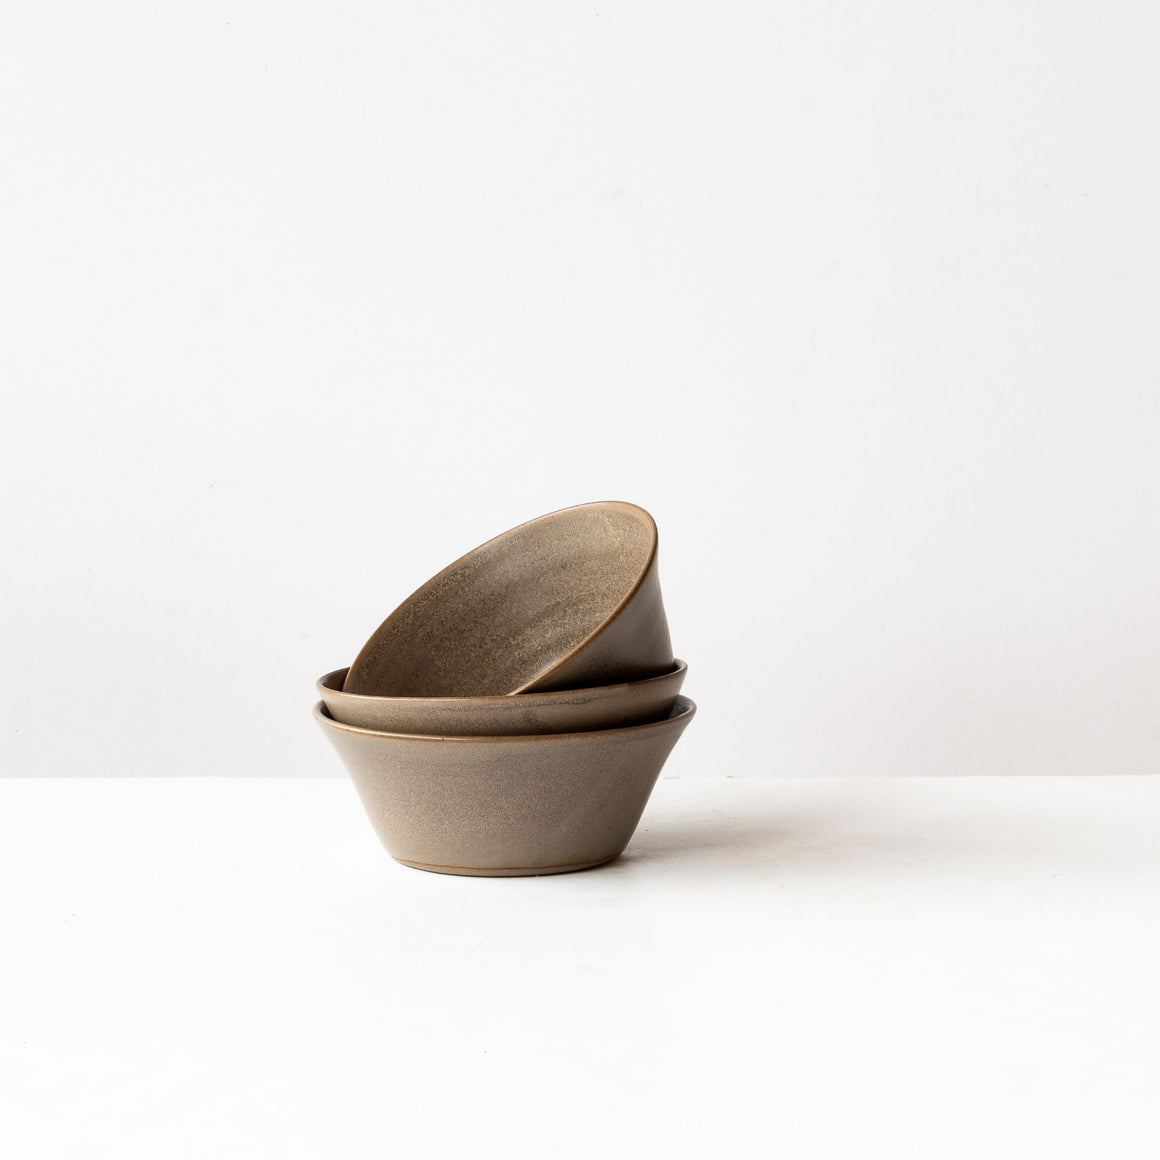 Taupe & Matte Black Stoneware Blooming Bowls - Sold by Chic & Basta